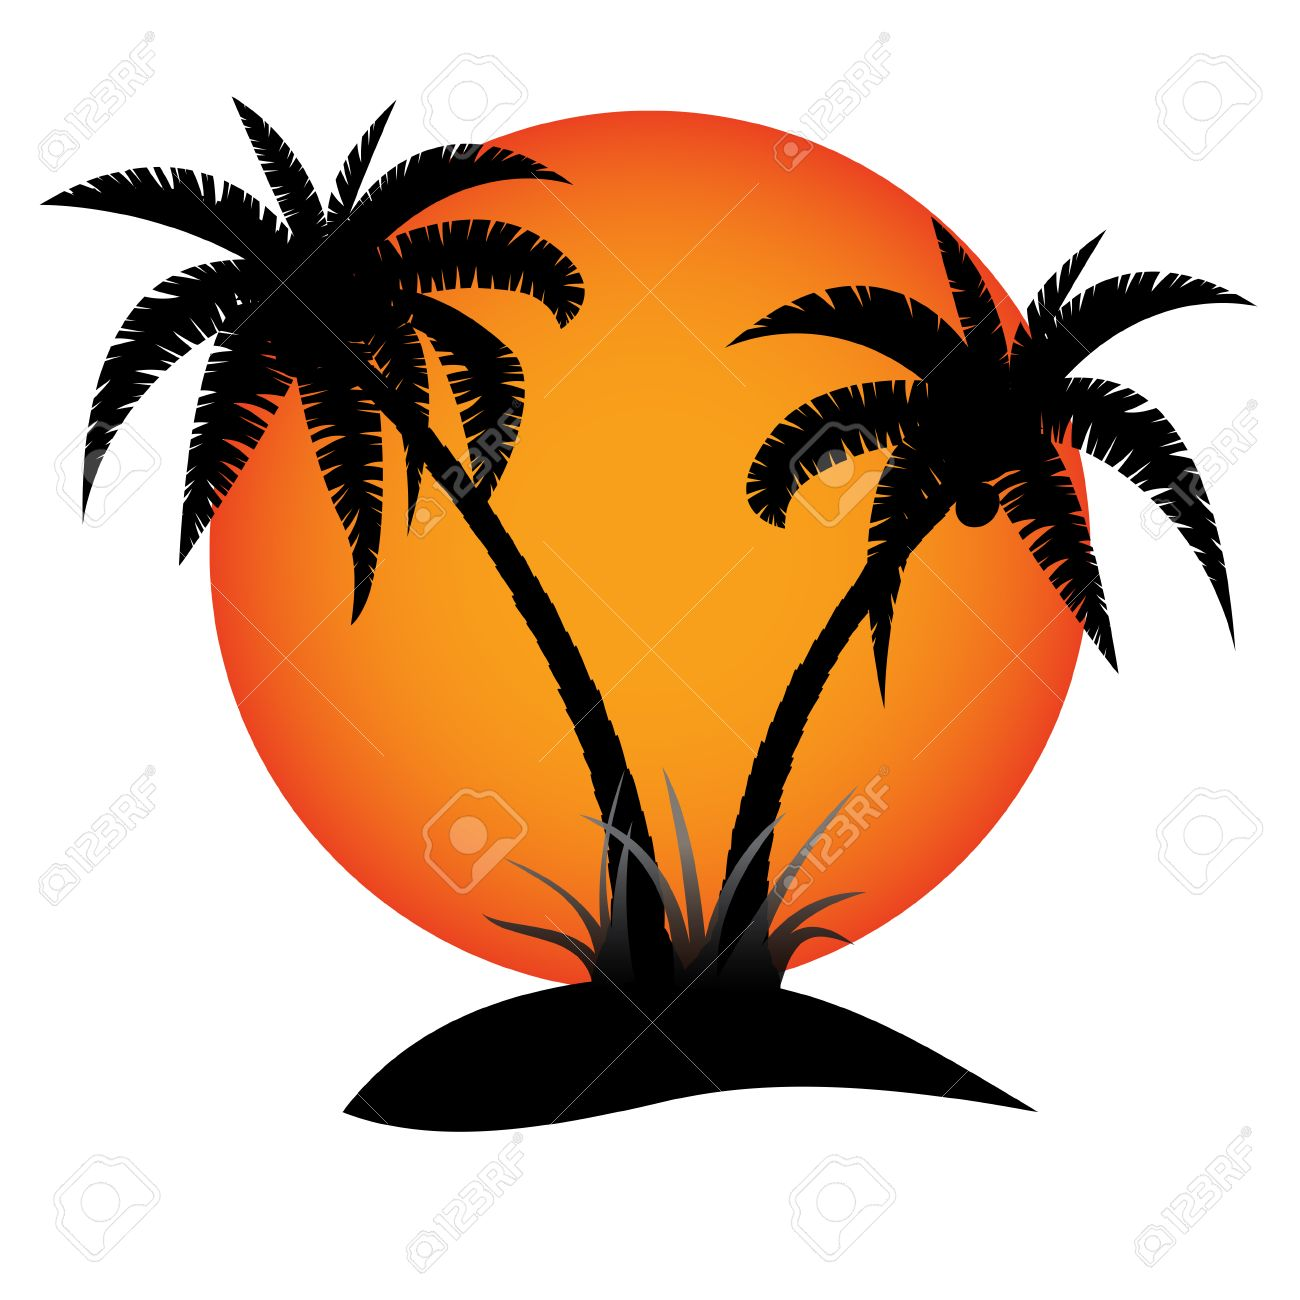 Palm trees silhouette with sun on tropical island - 42098282